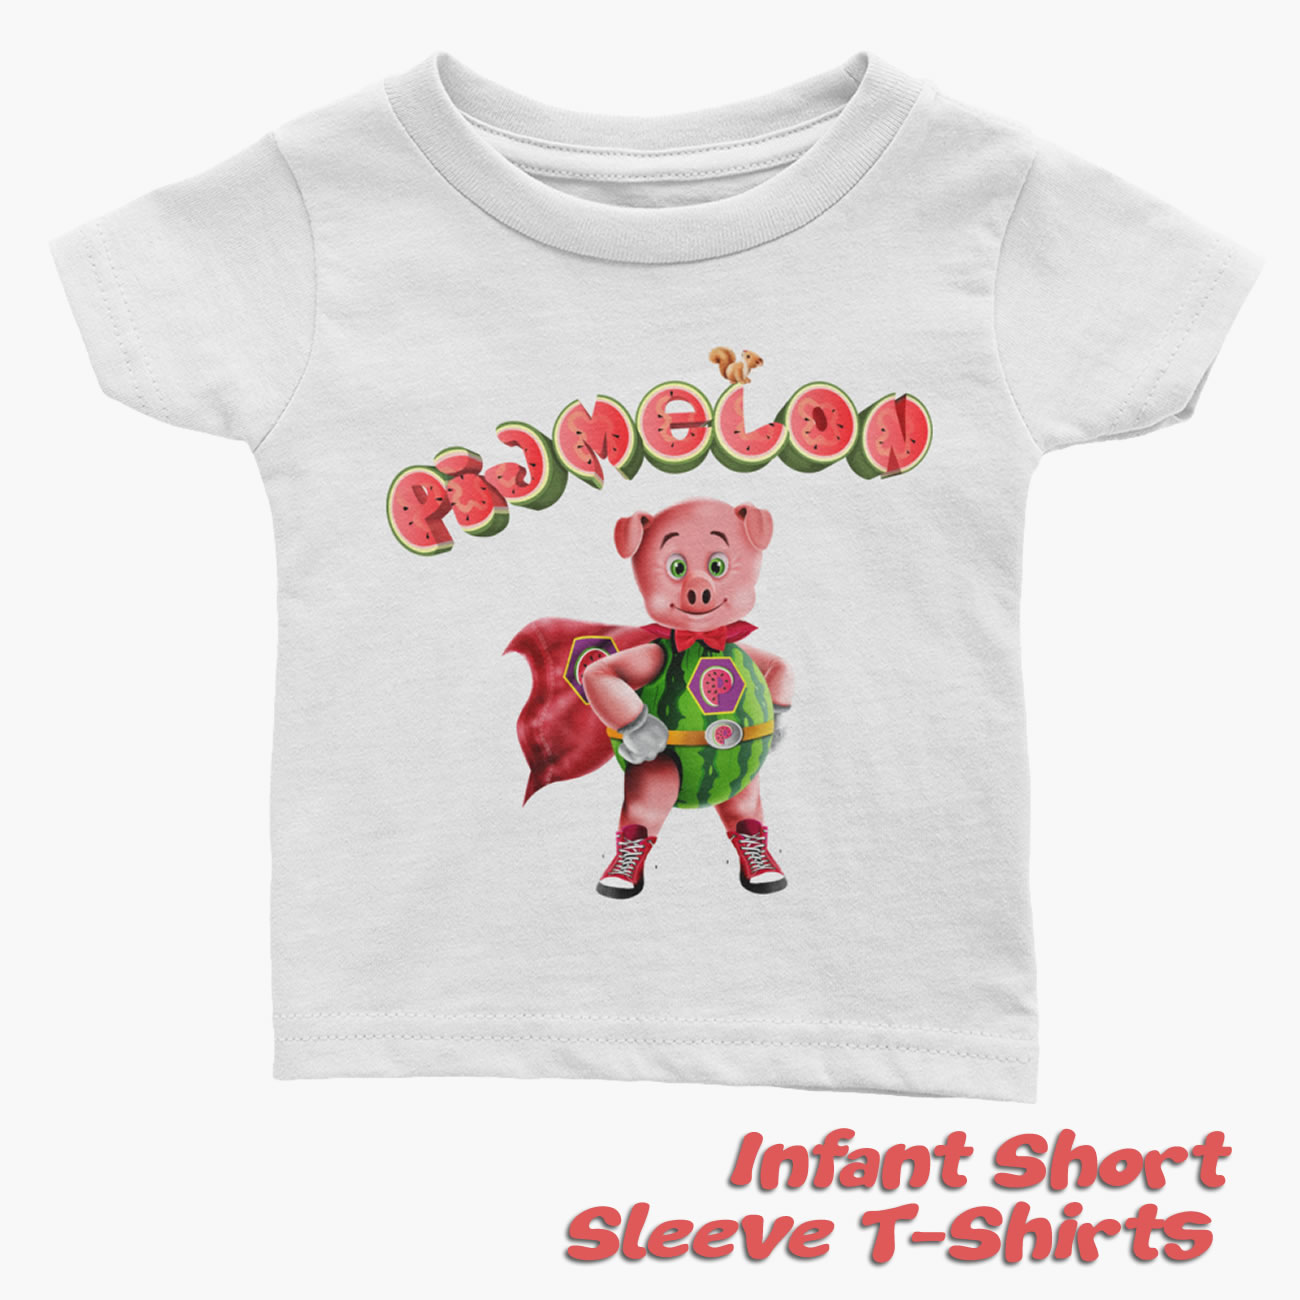 Pigmelon Infant Short Sleeve T-shirts